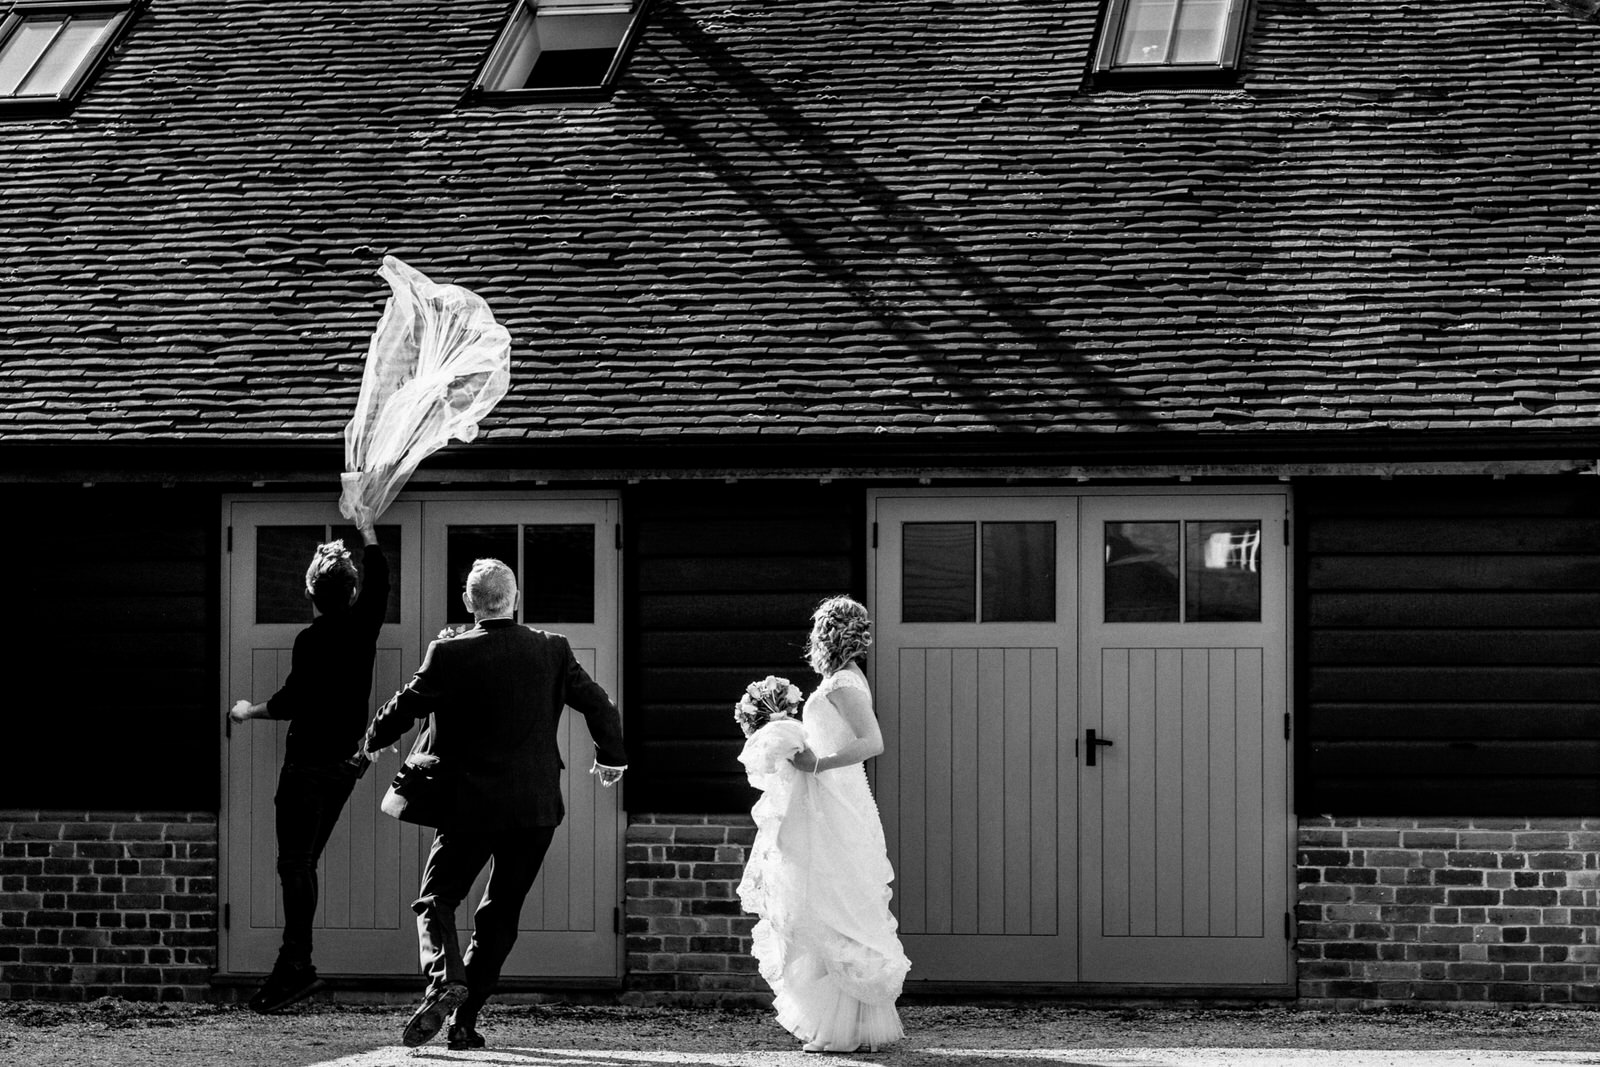 brides veil blown off at wedding day